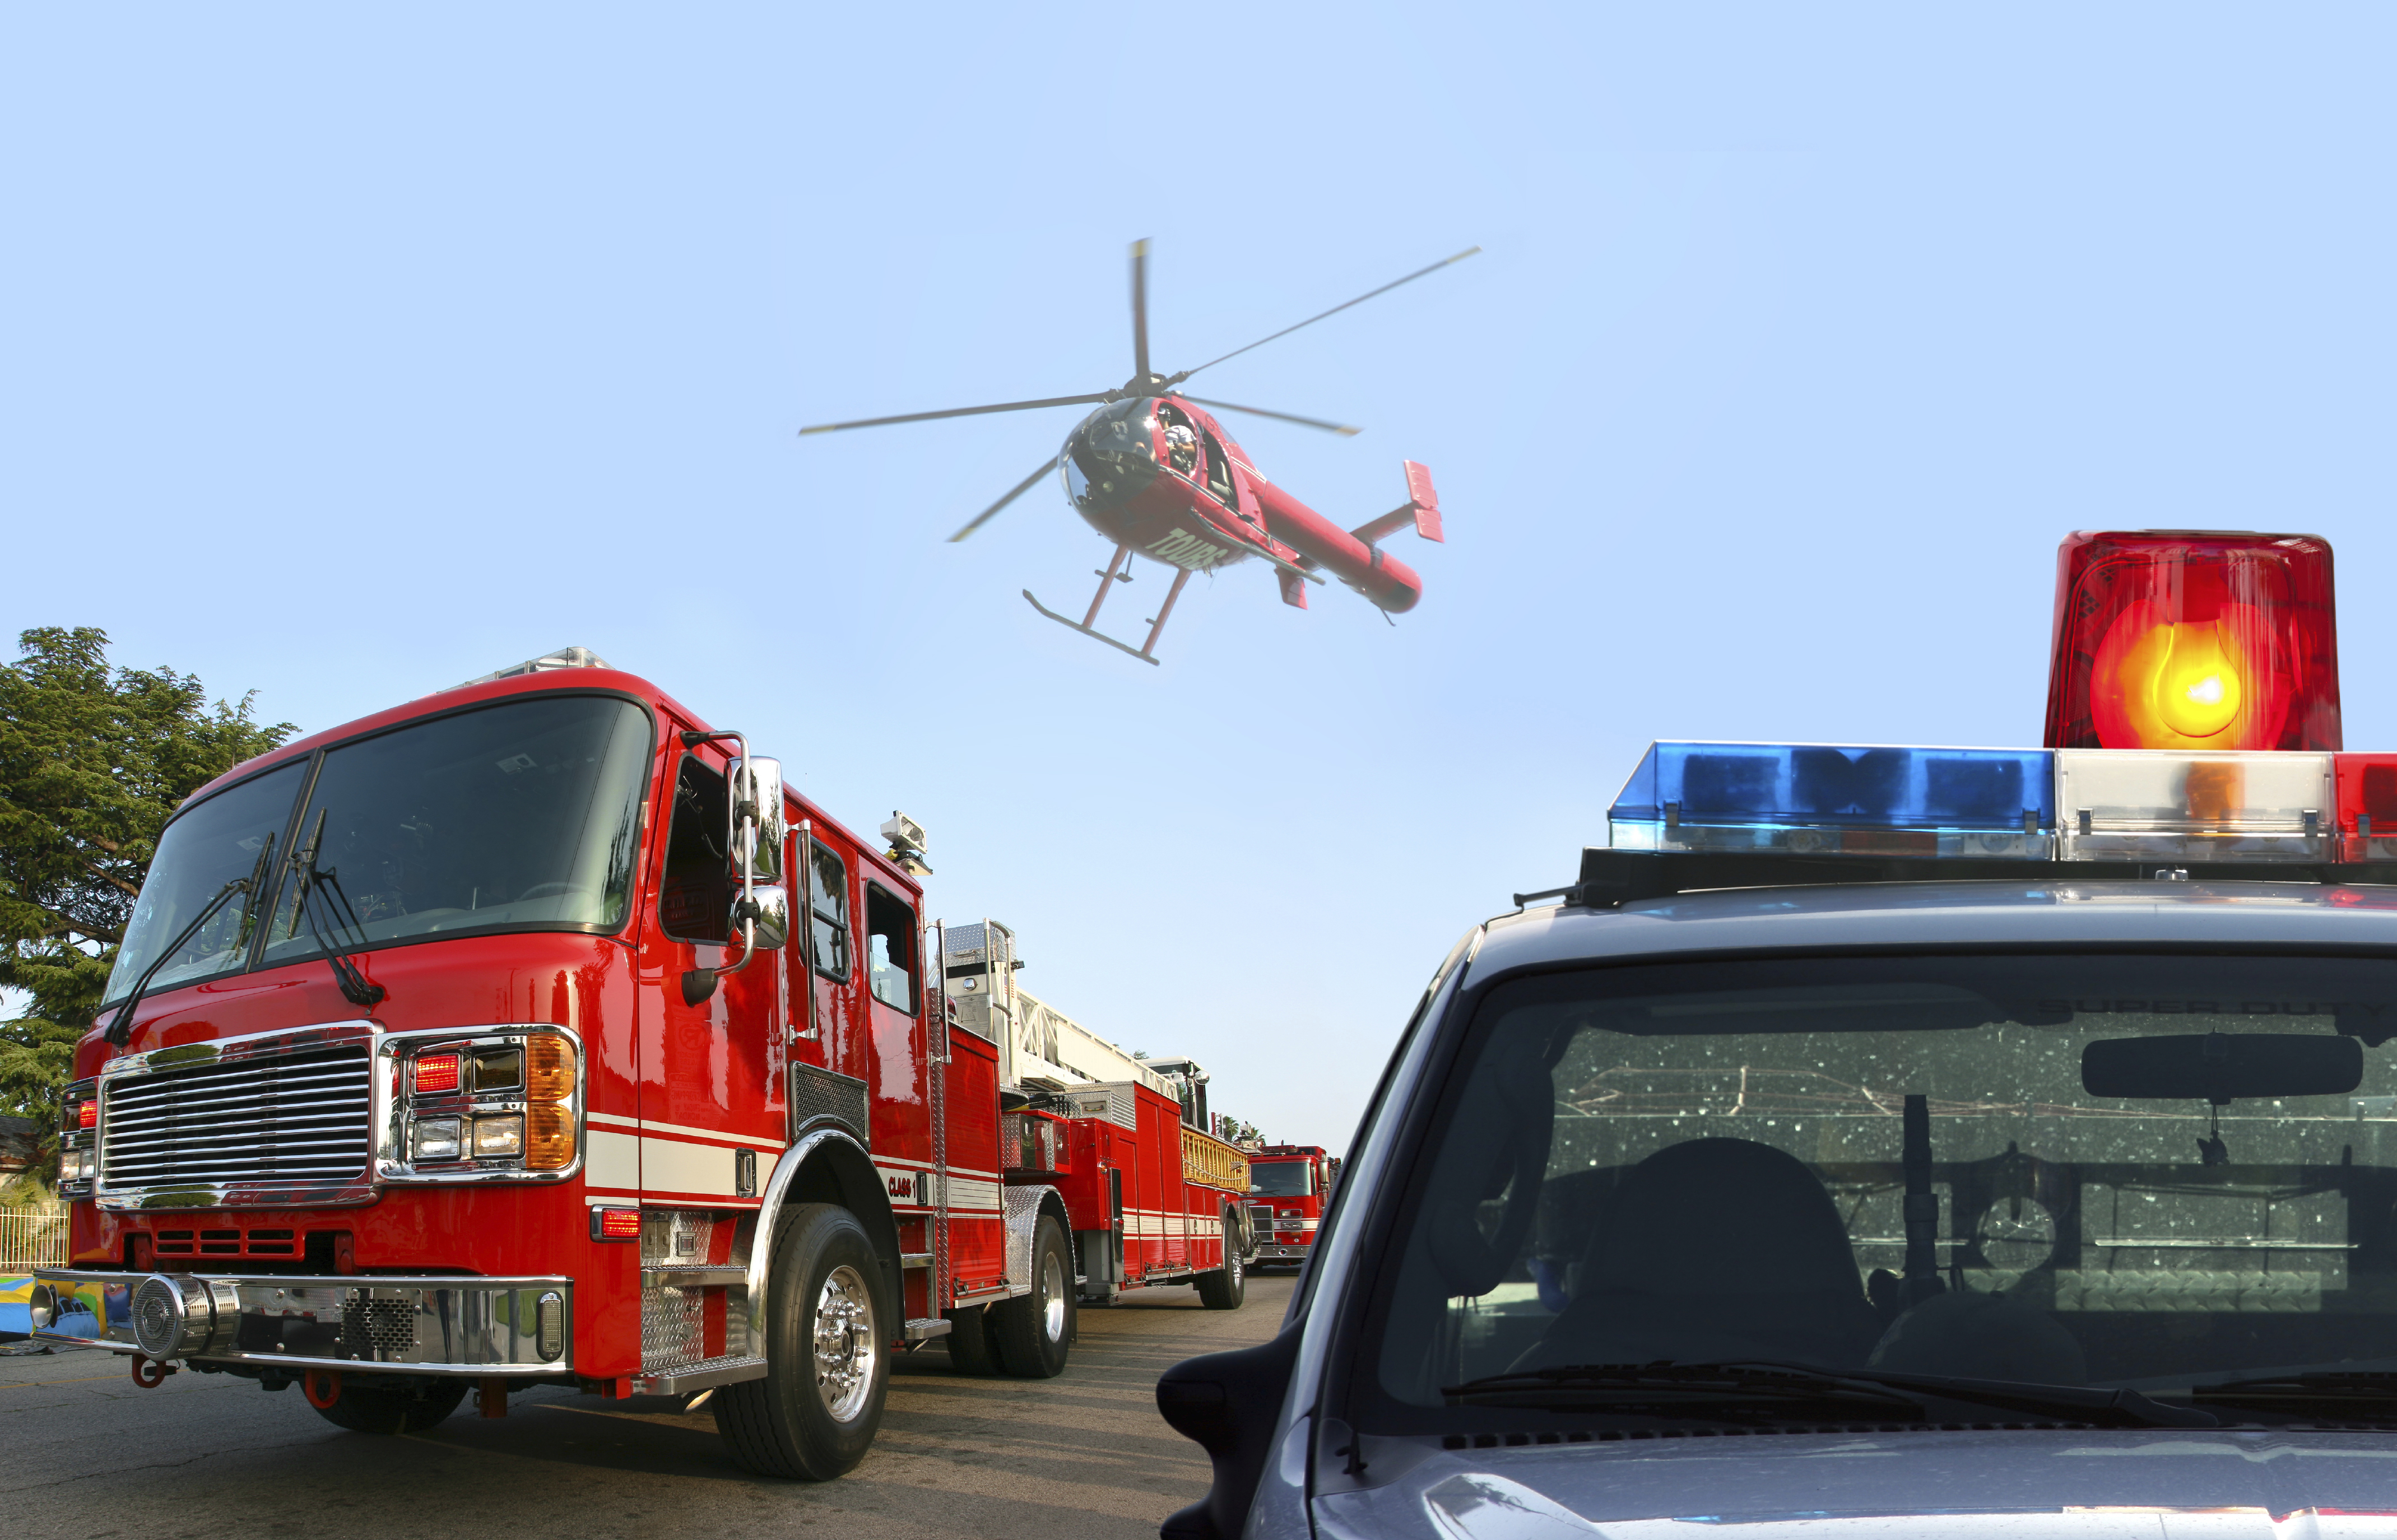 First responders face many risks along the roadways